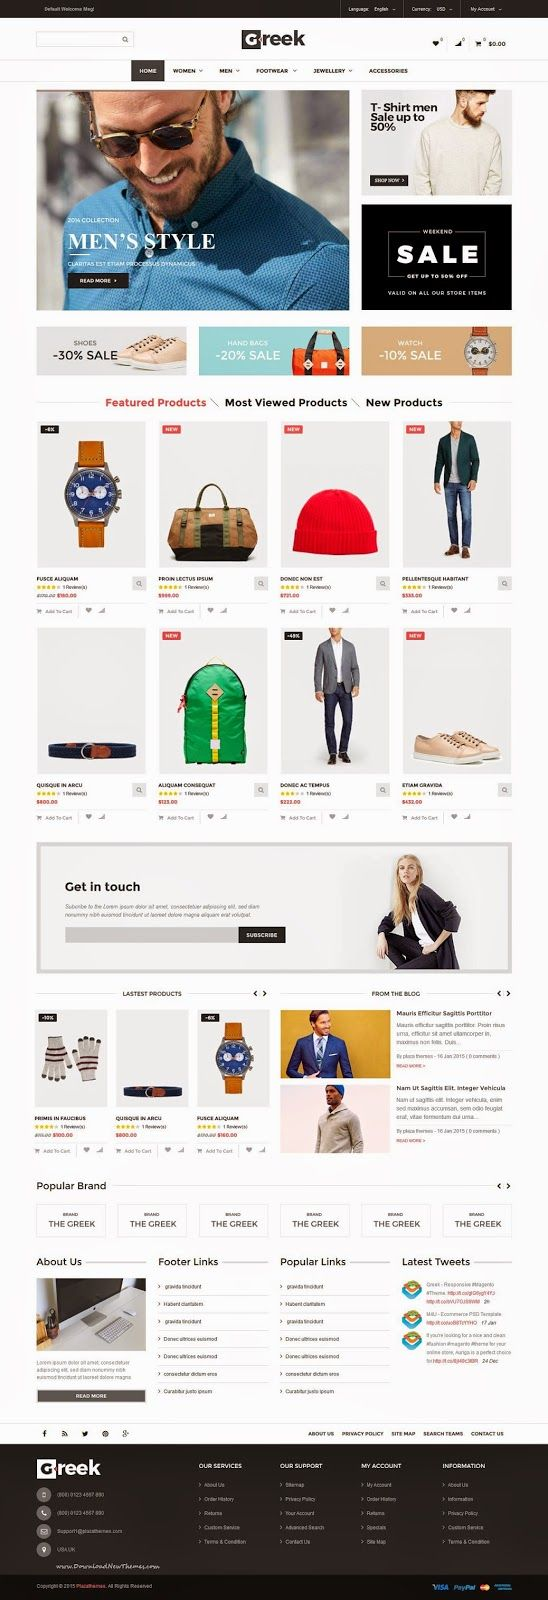 Greek Simple and Clean Responsive Magento Theme 2015 #fashion #clothes #store